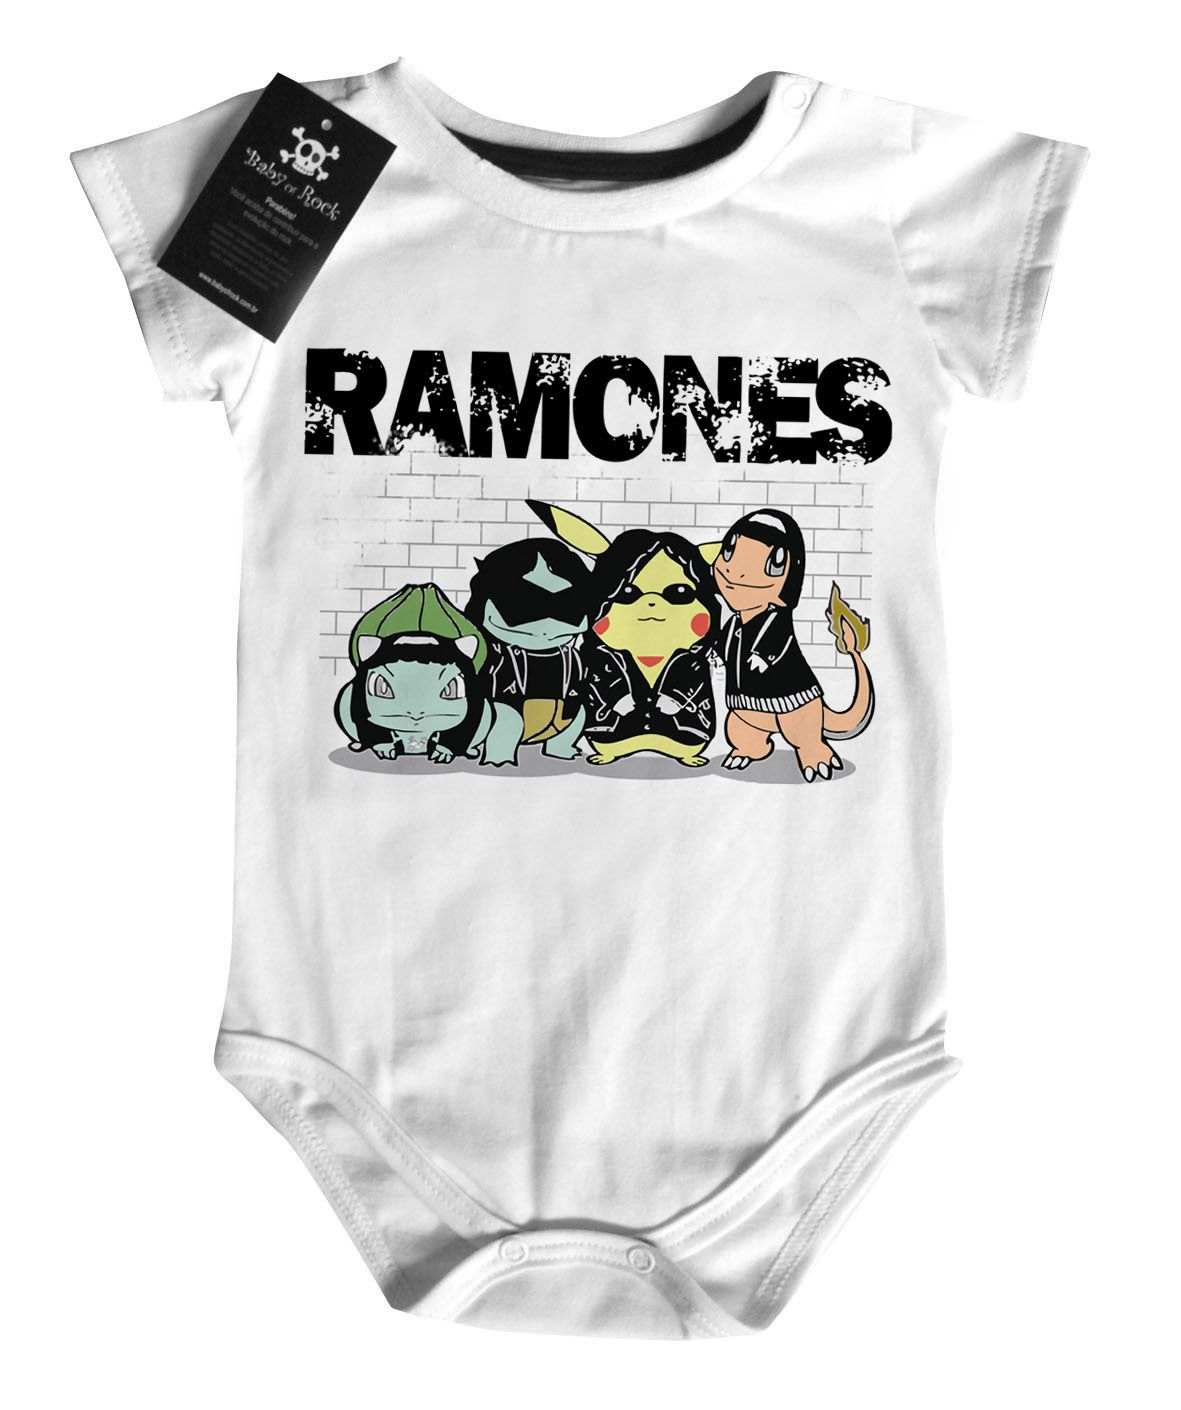 Body Bebe Rock Nerd Geek Ramones Pokemon - White  - Baby Monster S/A